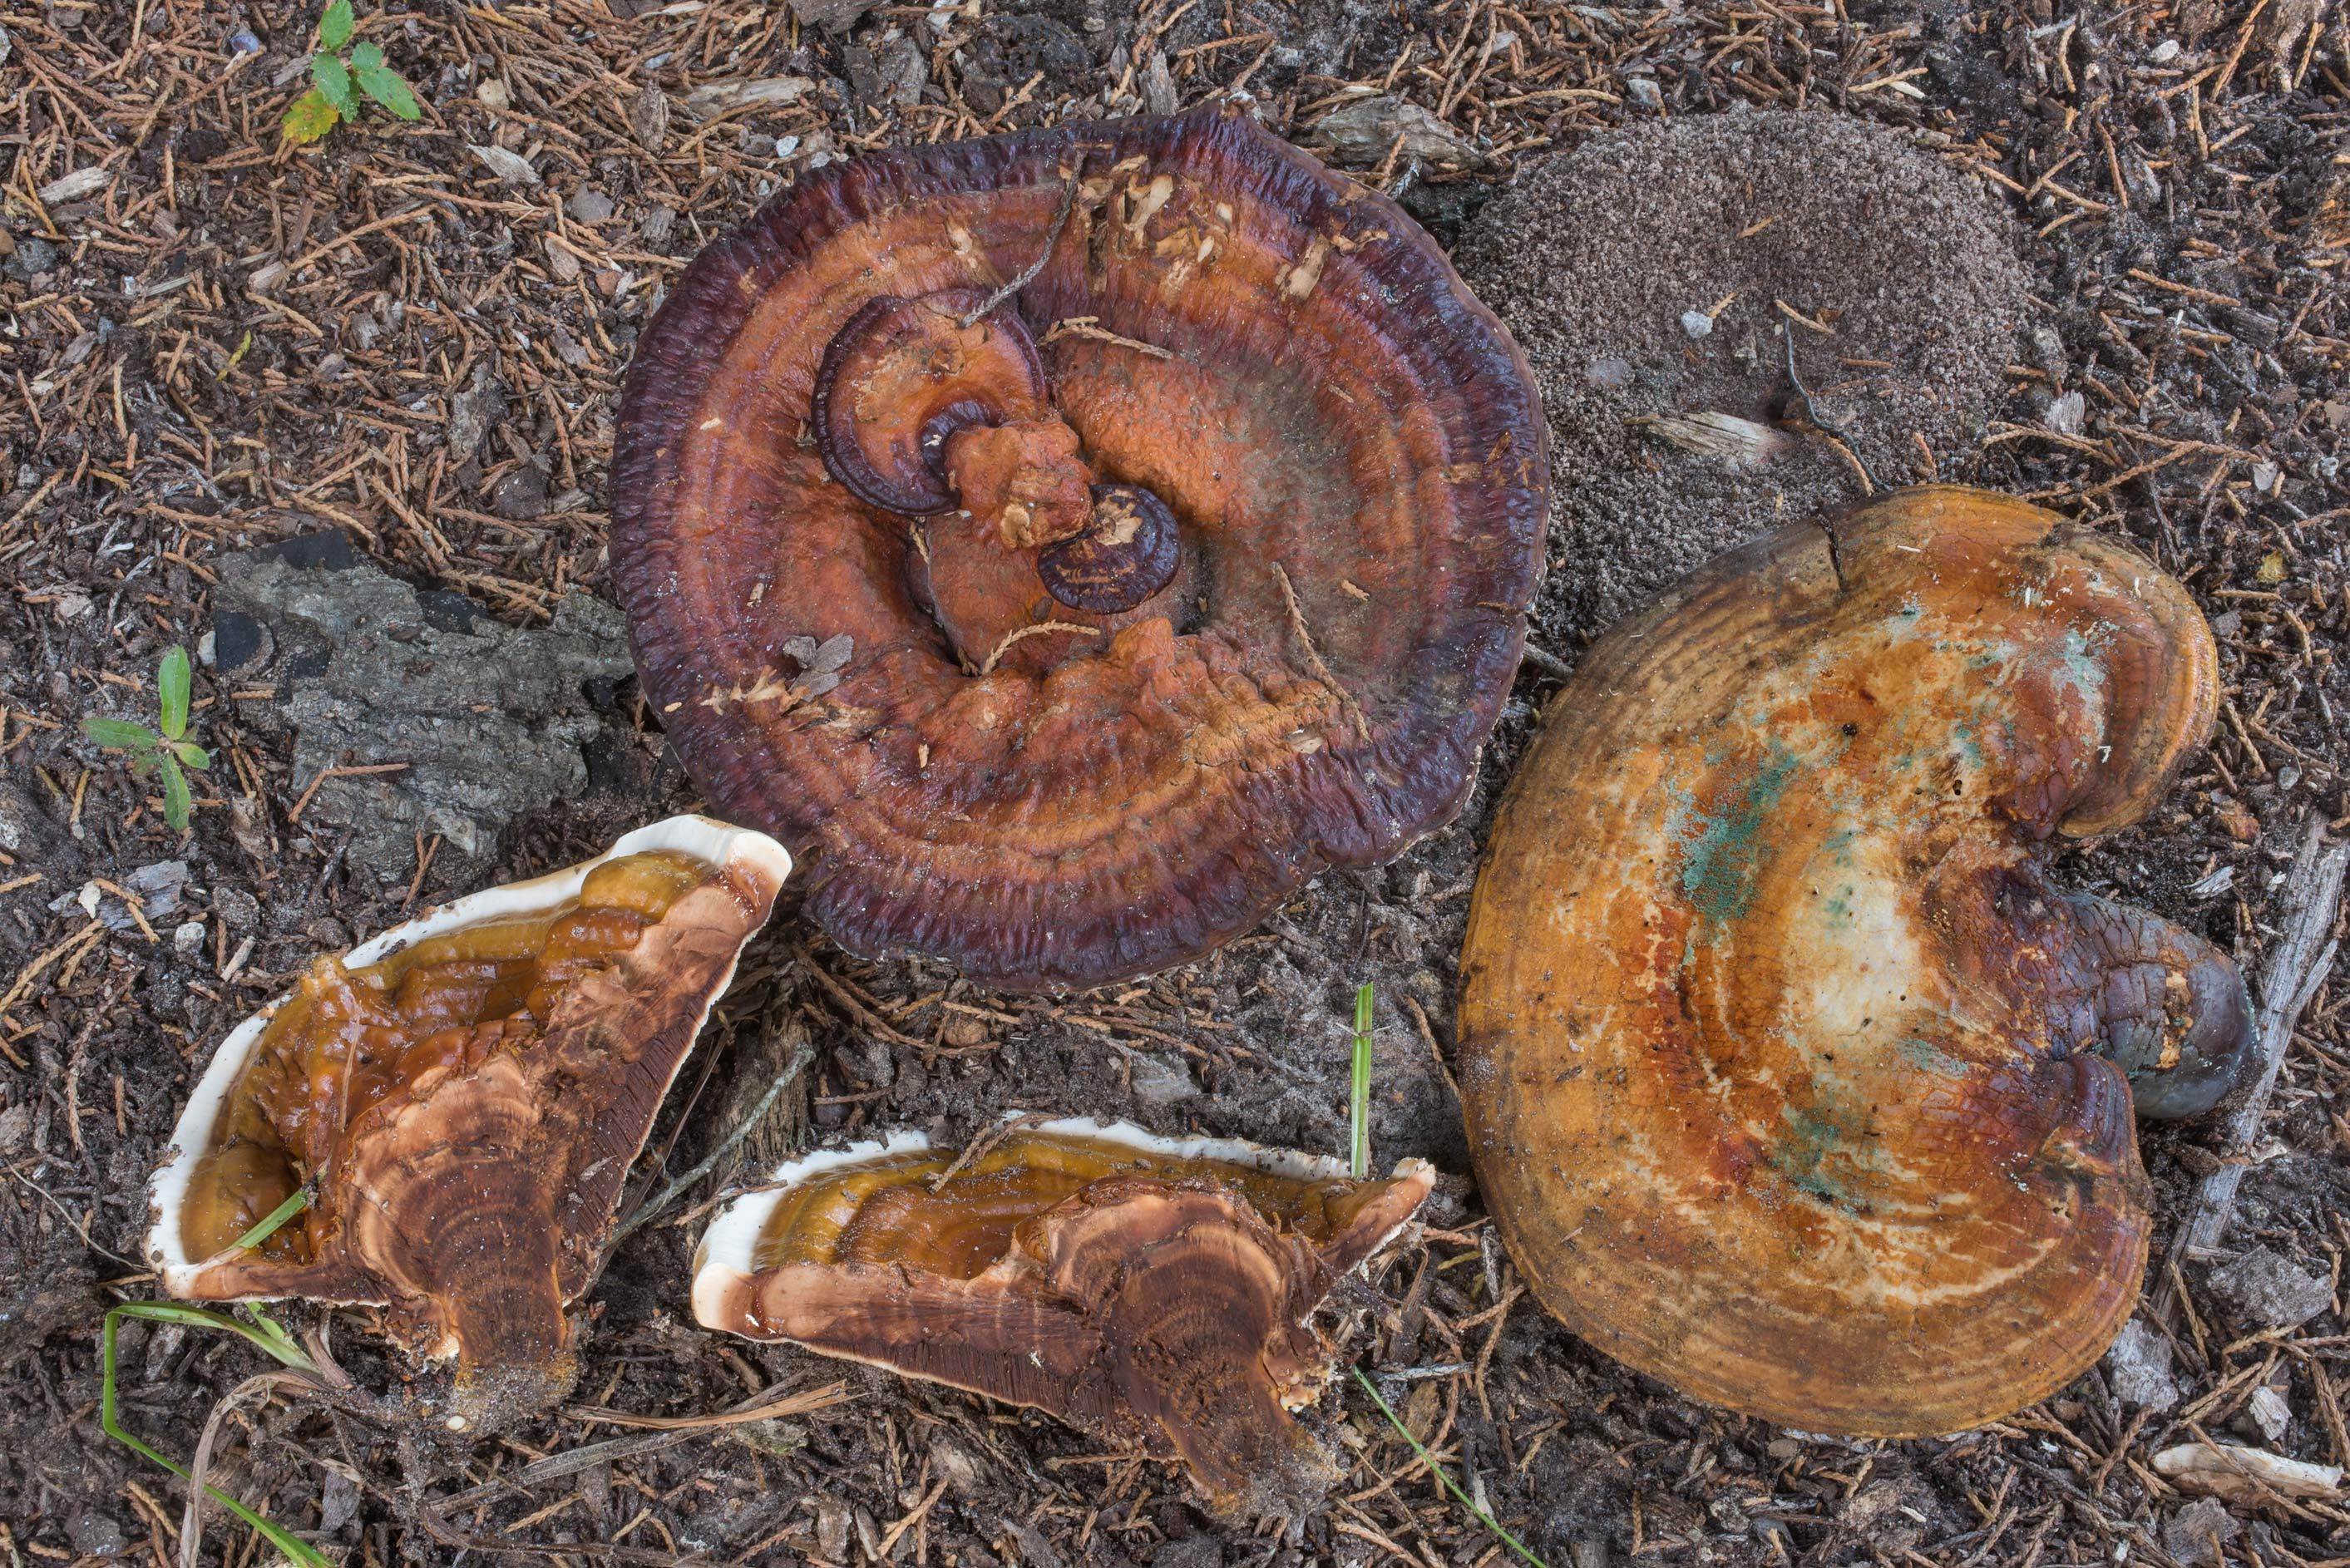 Dissected polypore mushroom Ganoderma sessile in...Cemetery. College Station, Texas